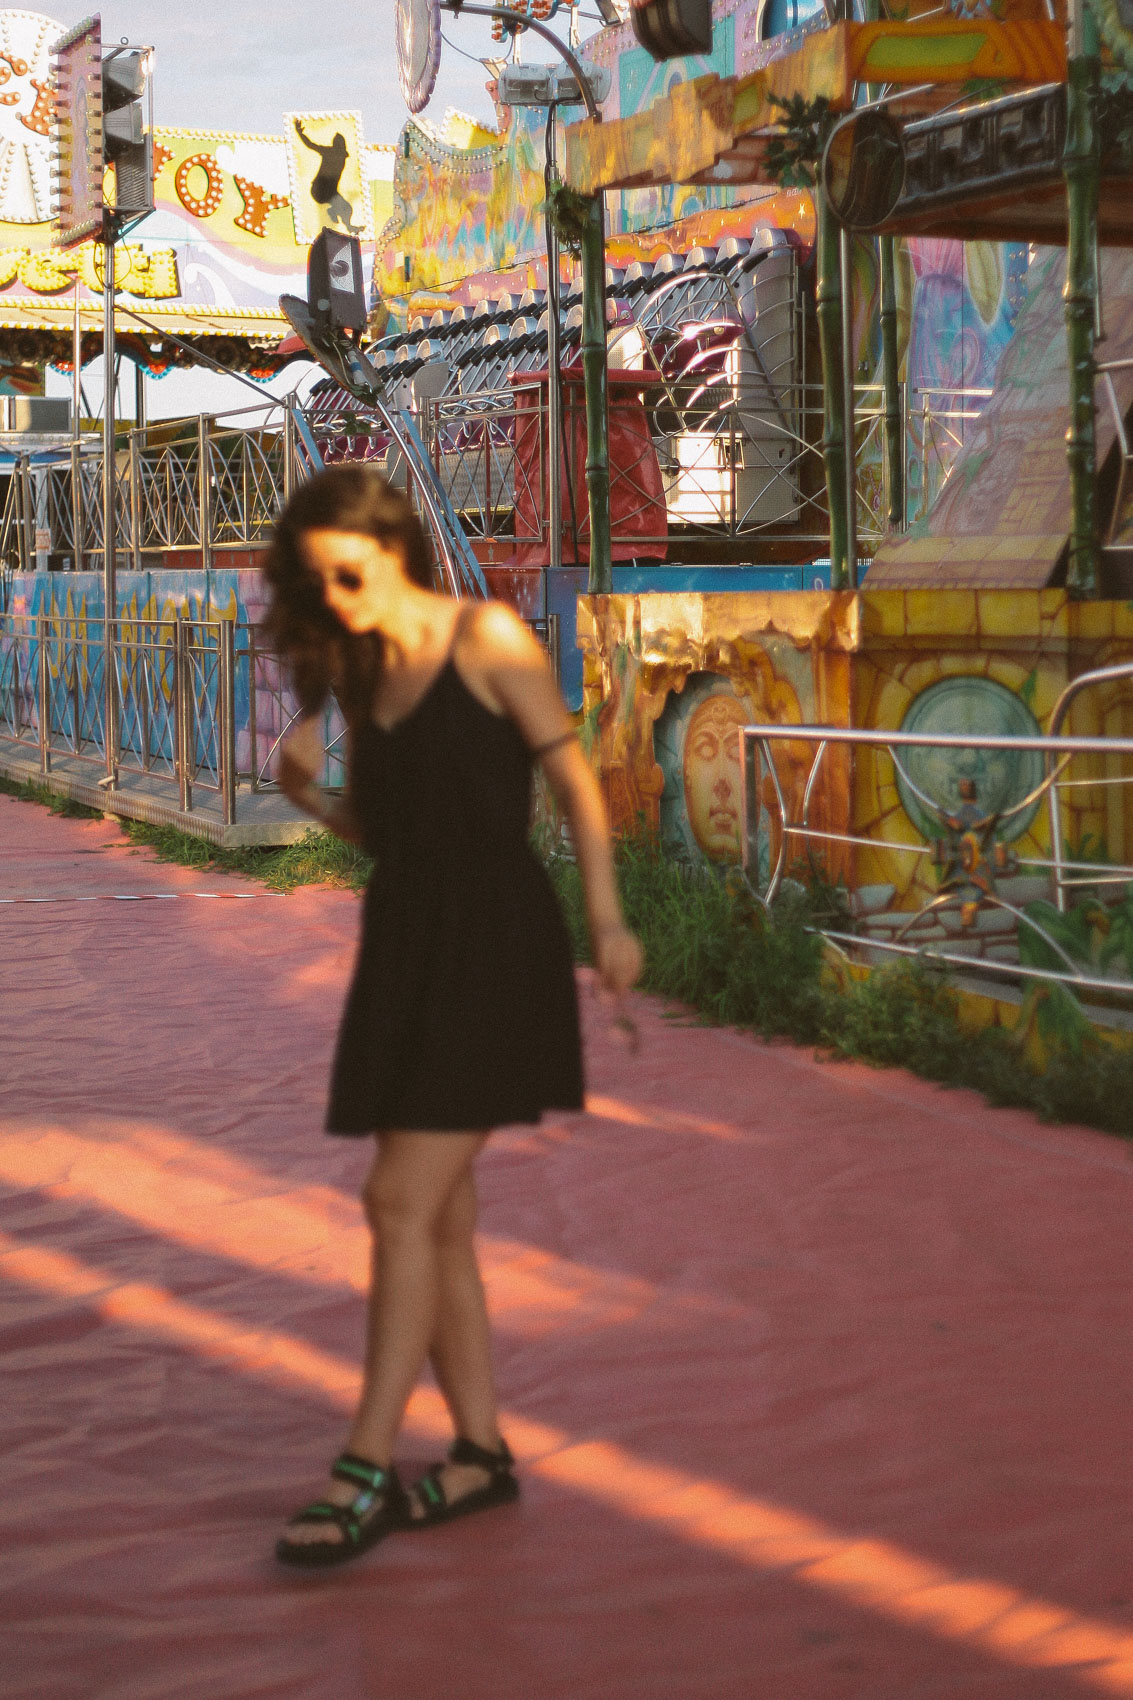 sunset at a funfair with a girl in a black dress in front of the scene